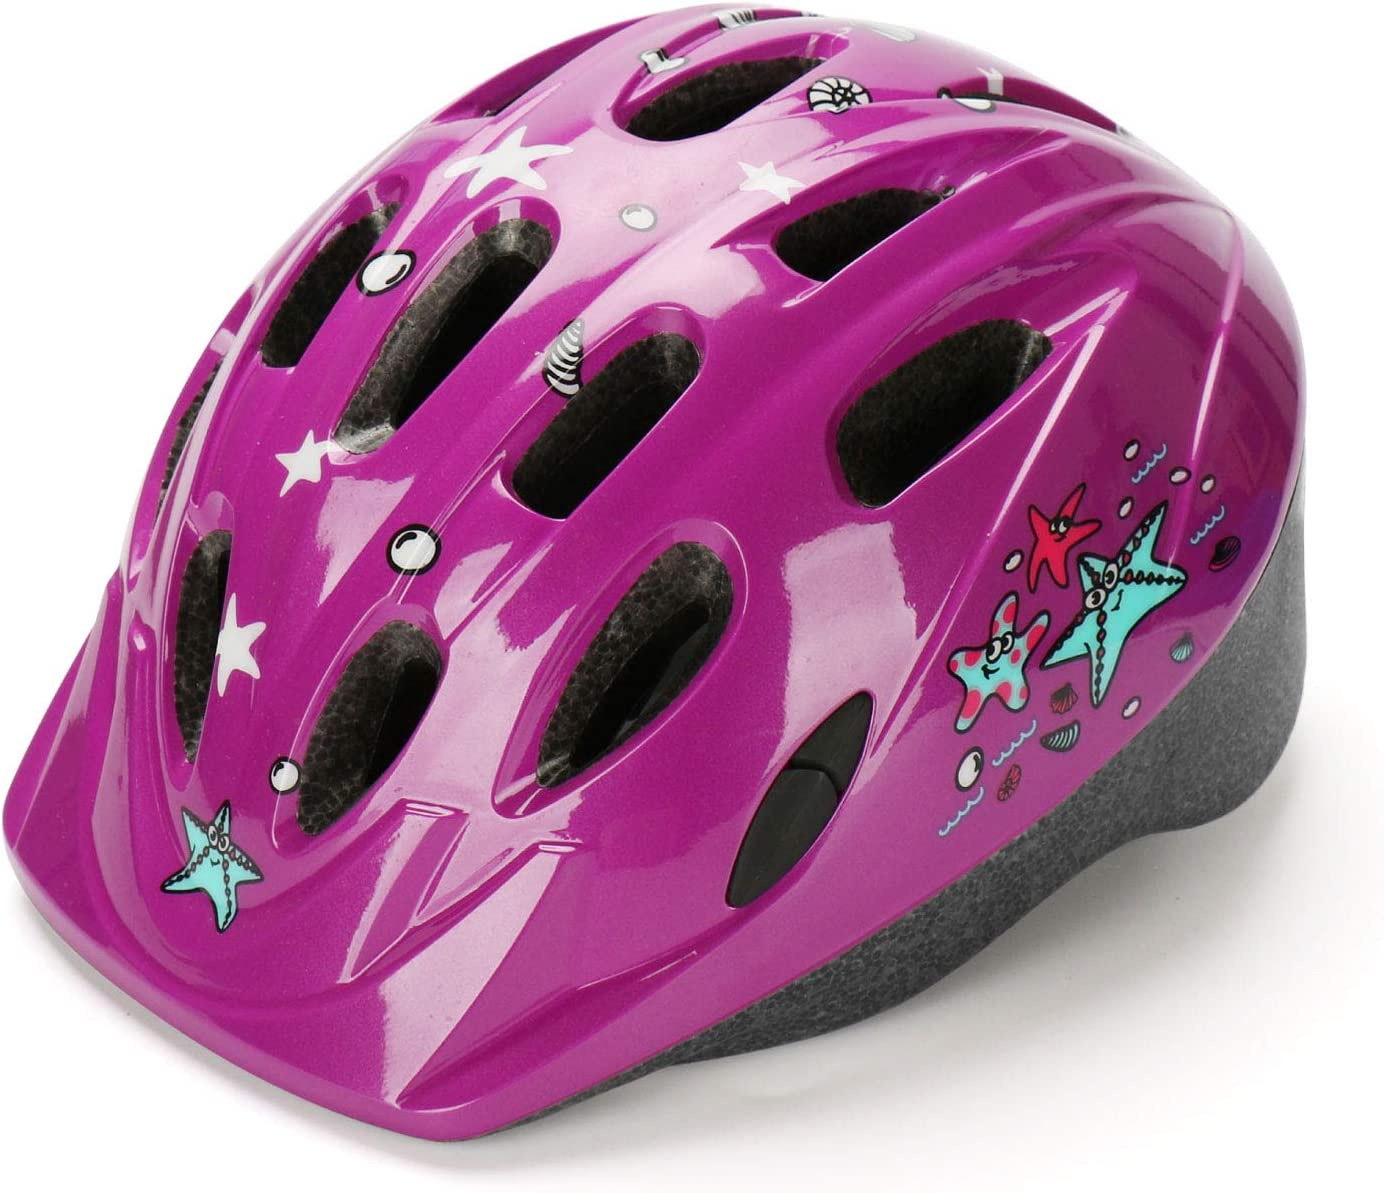 AGH Kids Bike Helmet,Adjustable for Toddler Kids Ages 3-7 Boys Girls,Multi-Sport Safety Cycling Skating Scooter Helmets with Fun Designs,CPSC Certified